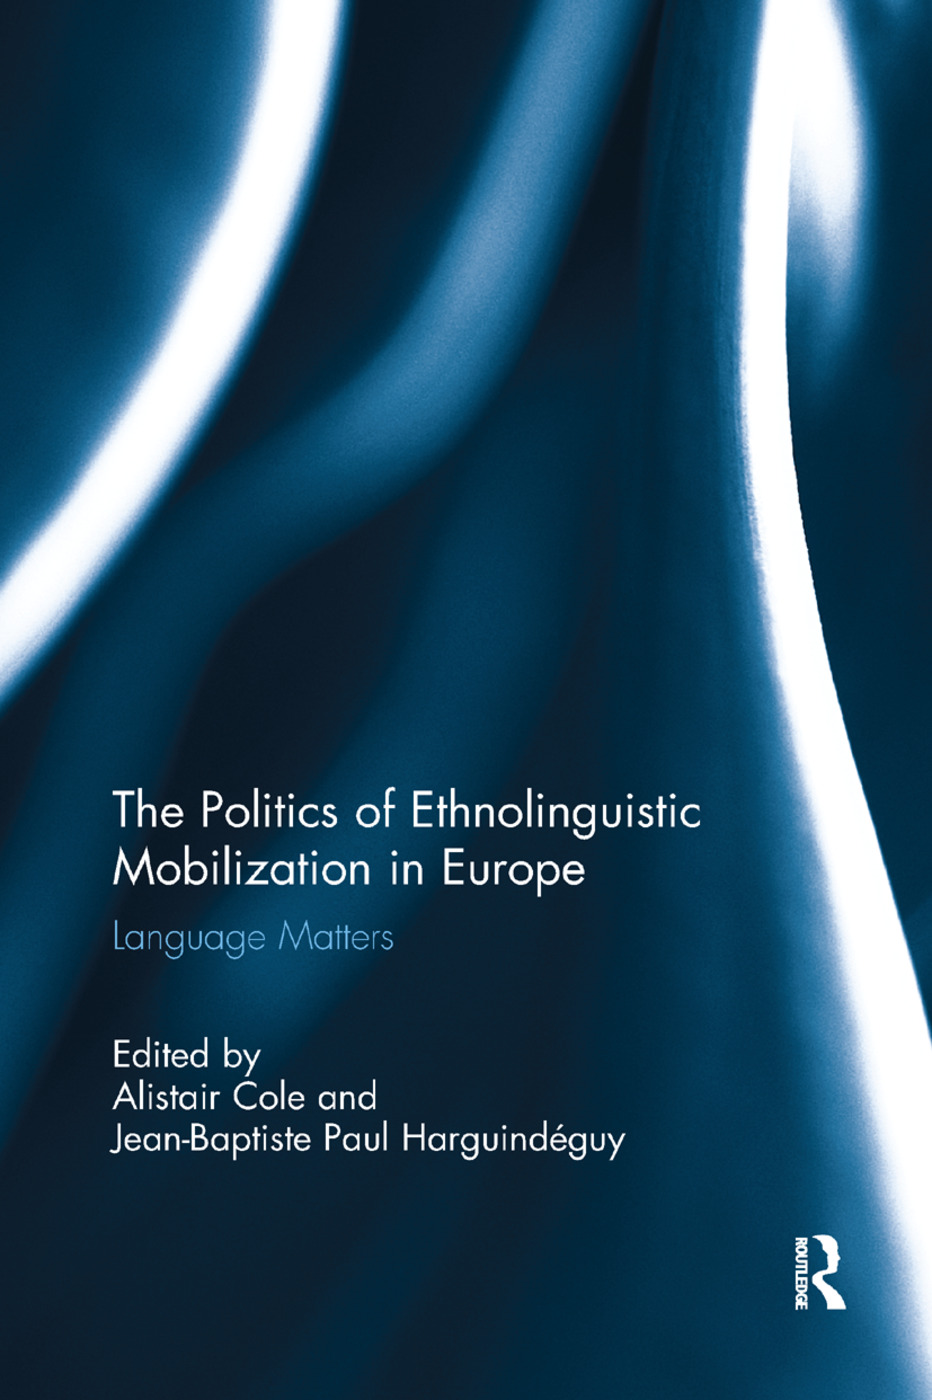 The Politics of Ethnolinguistic Mobilization in Europe: Language Matters book cover